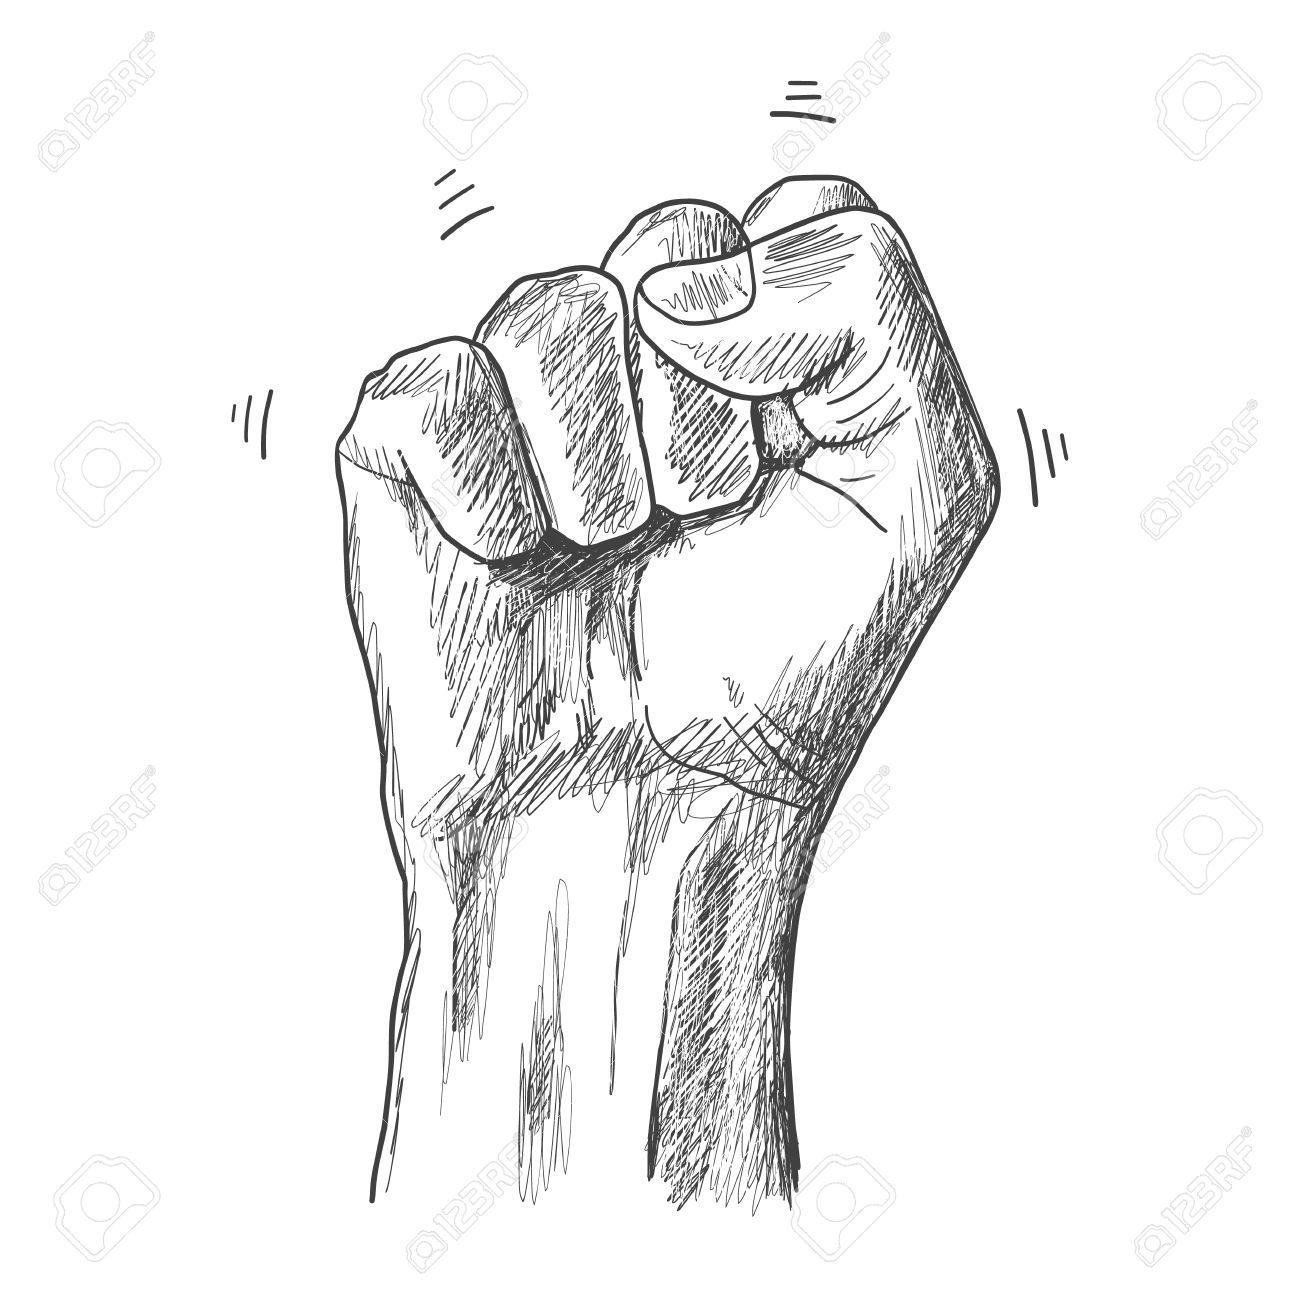 Sketch drawing fist hand gesture stock vector 55687435